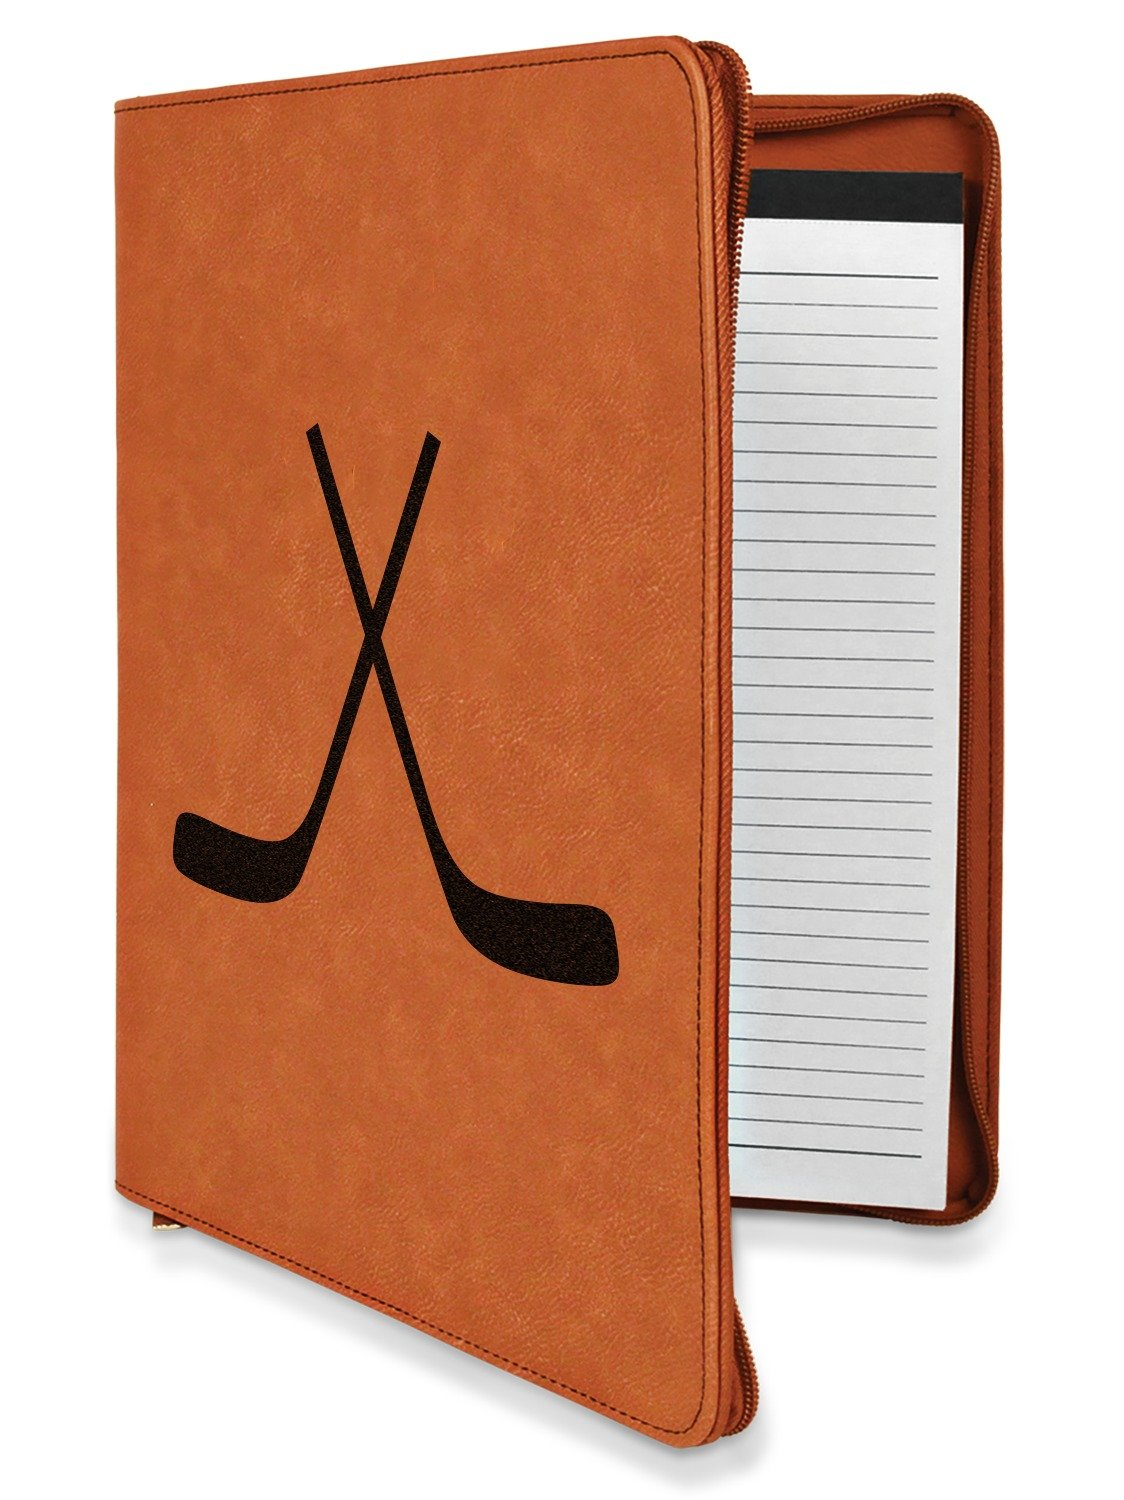 Hockey Leatherette Zipper Portfolio with Notepad - Double Sided (Personalized)